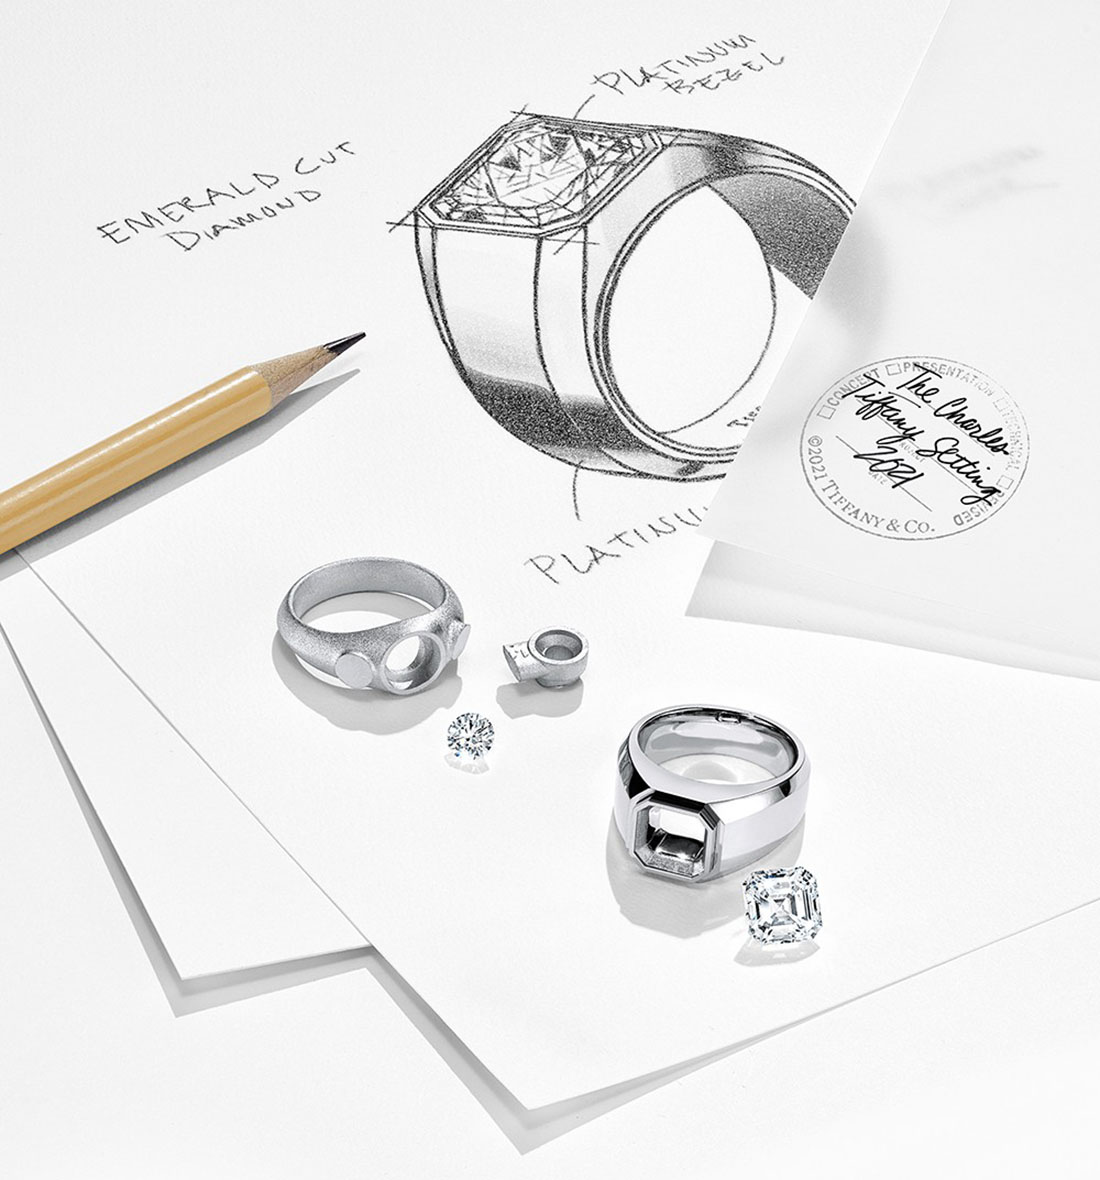 Tiffany & Co. - Collection Bagues Fiançailles Homme Charles Tiffany Setting